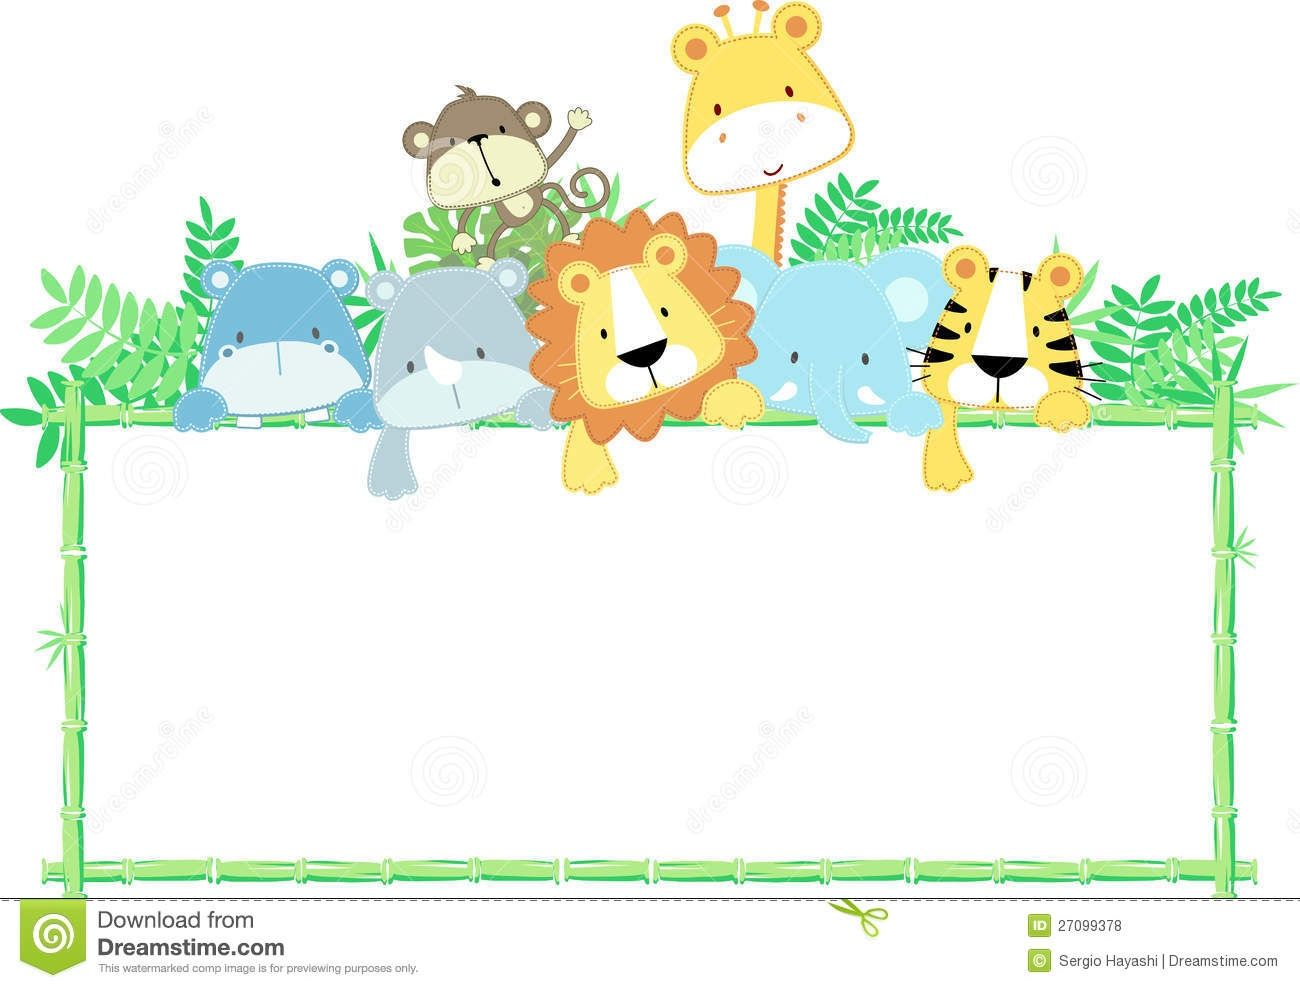 Animals clipart borderline. Animal border clipartuse zoo